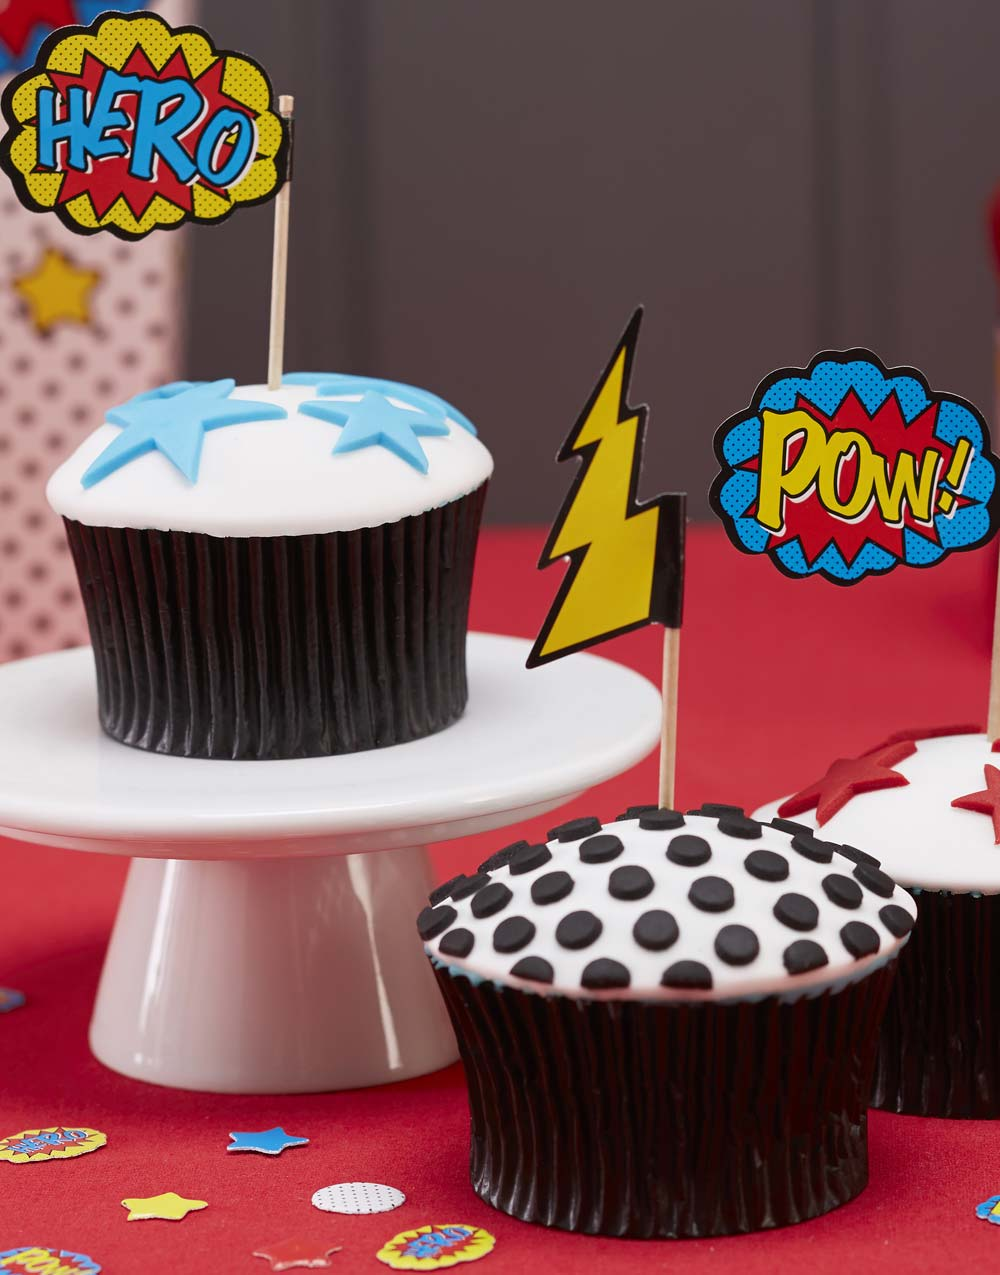 20 stk Cupcake Pinnar med Flagga- Pop Art Tecknadserieparty